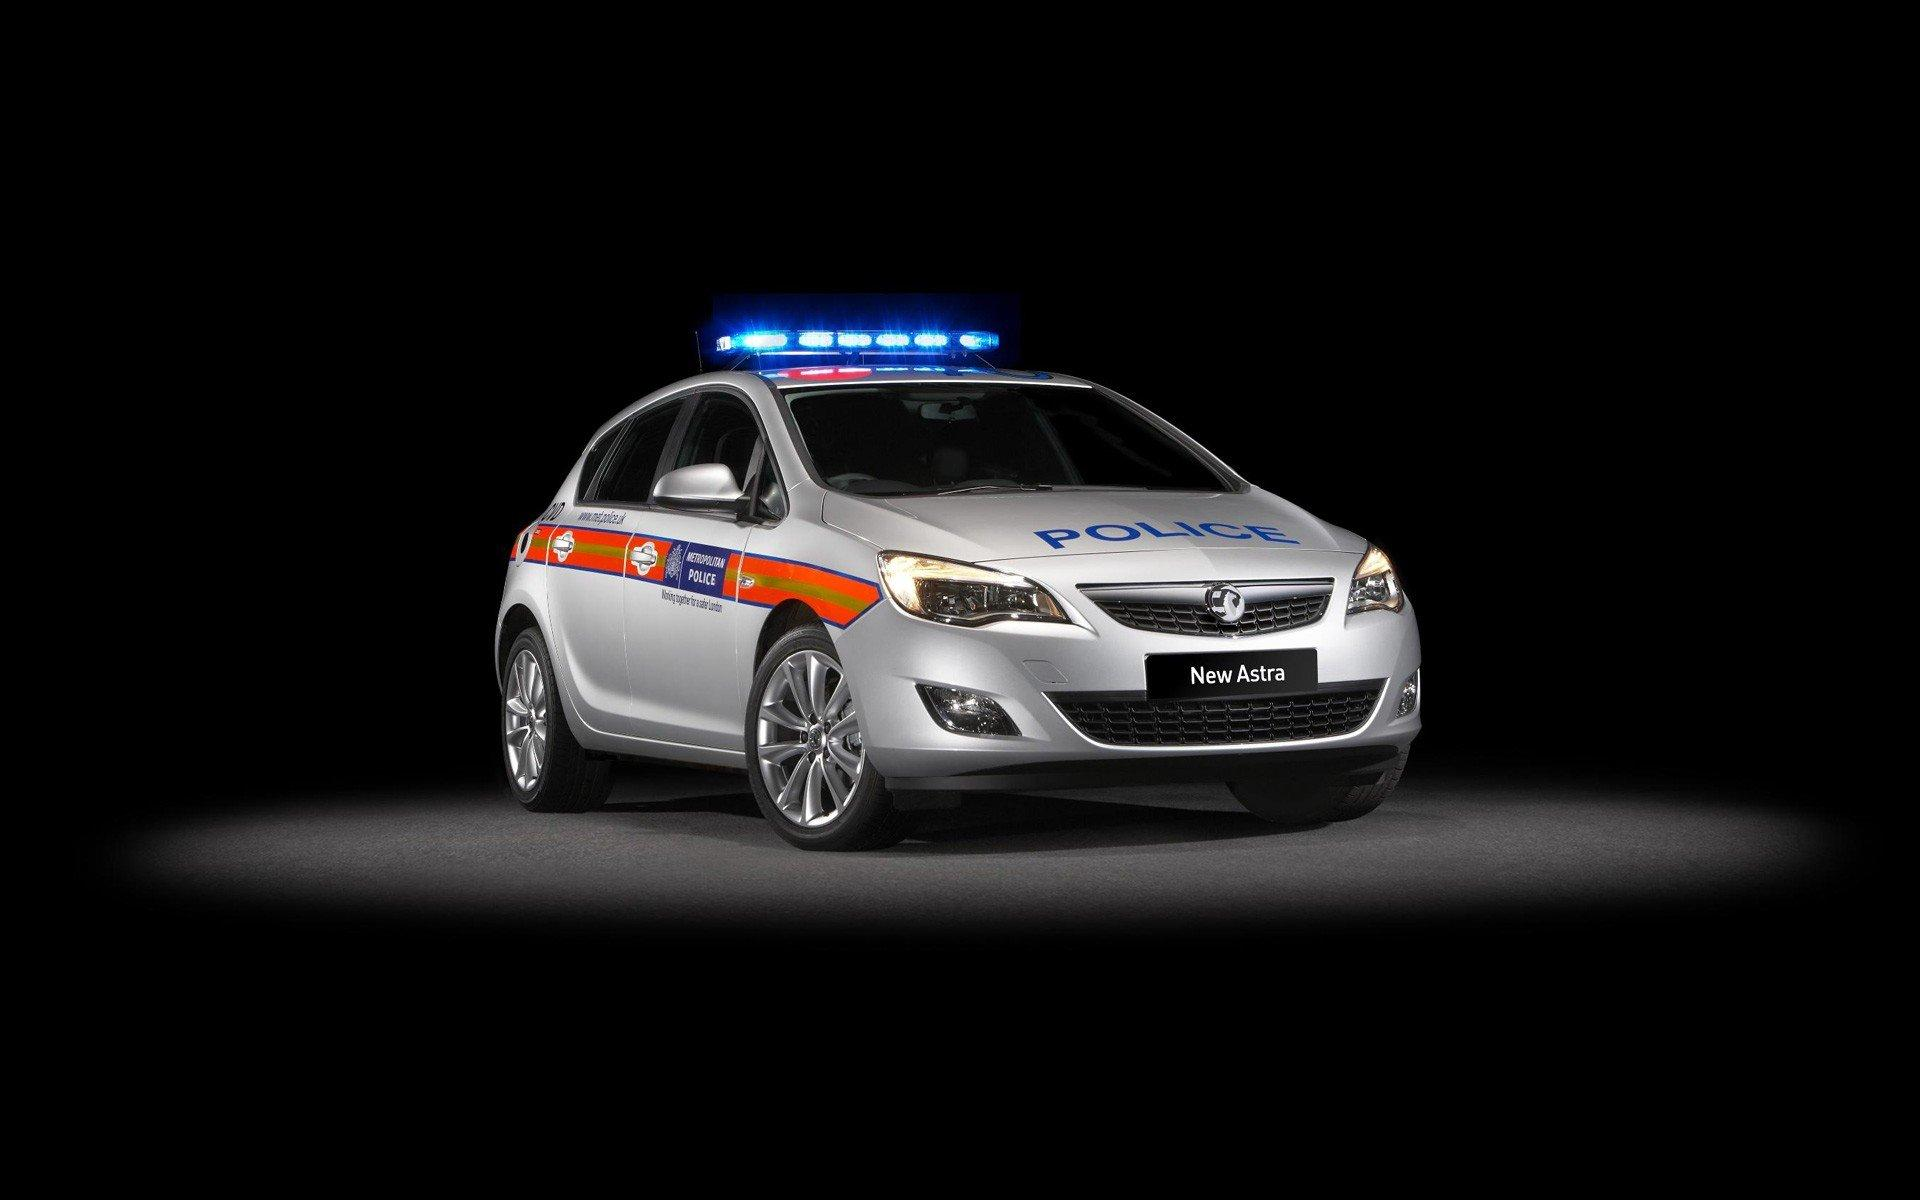 Vauxhall Astra Police Car Wallpaper 483588 1920x1200 (145.43 KB)